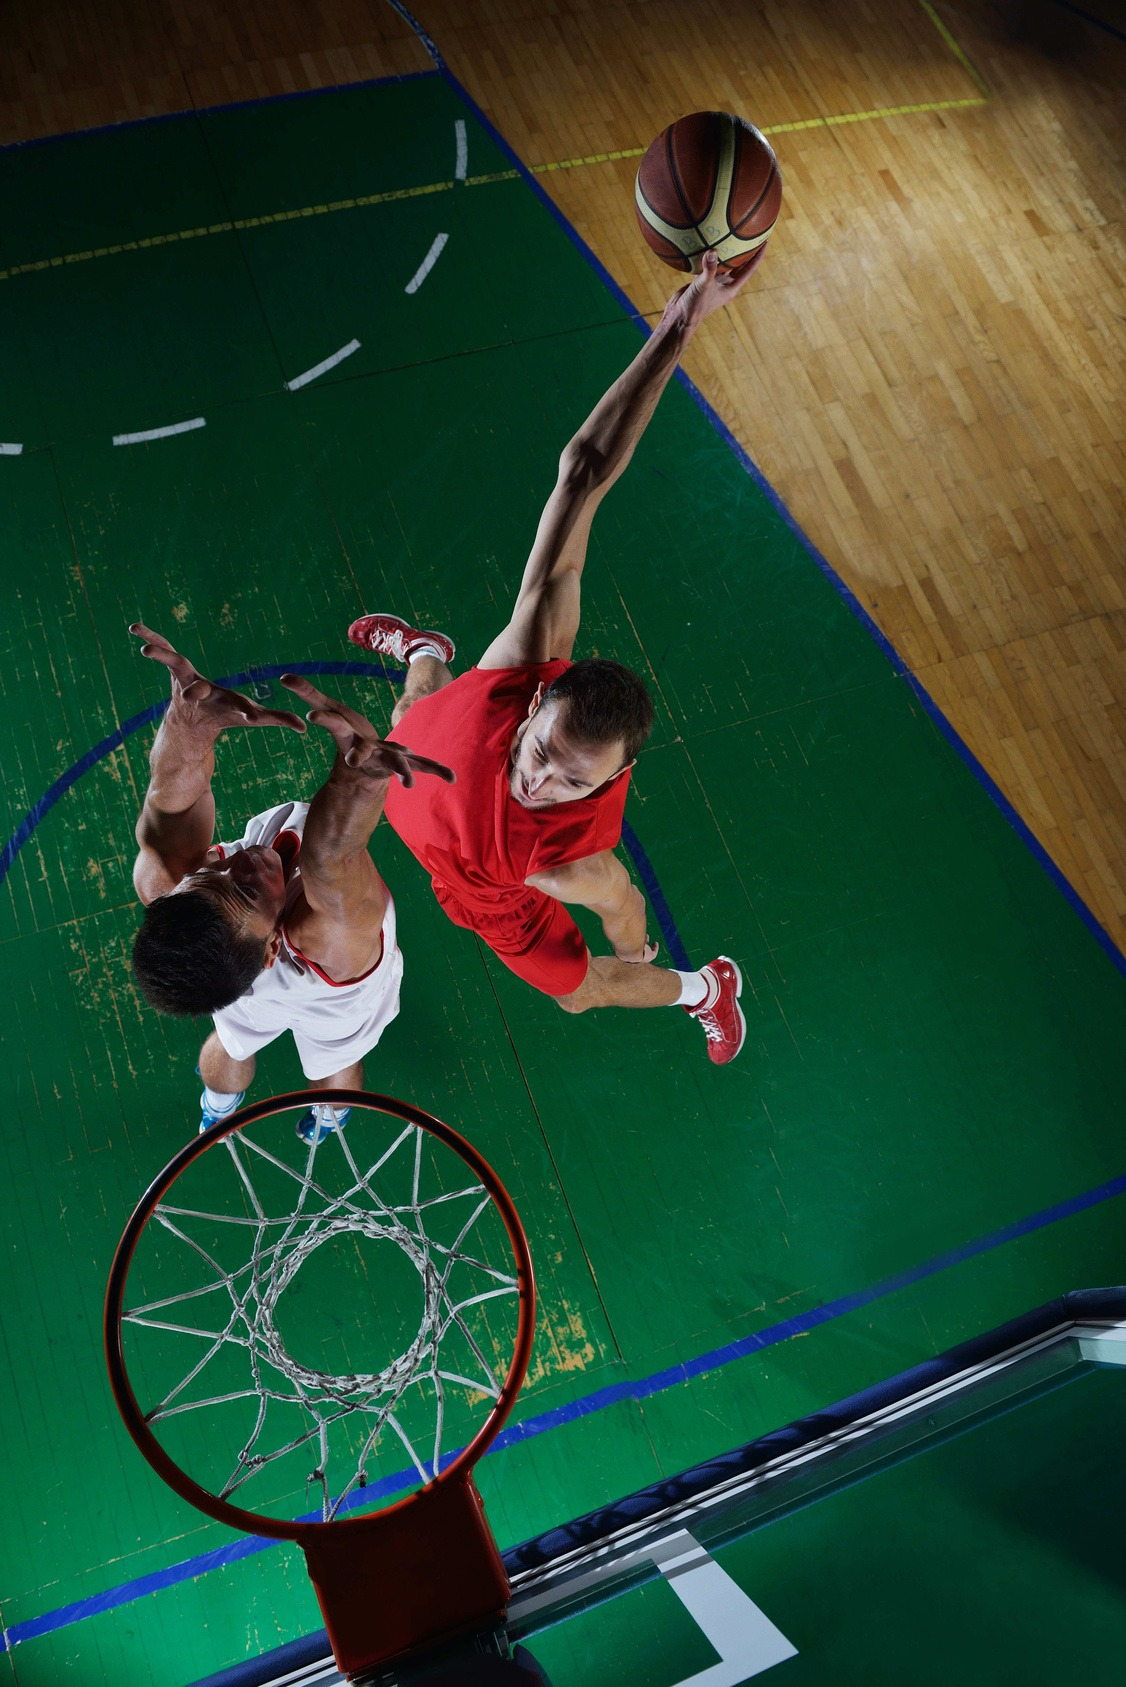 Atheltic Injury? Pain in Playing Sports? Your Top Pain Management Orthopedic / Geriatric / Sport Rehabilitation Therapists (PT) are here to help you!